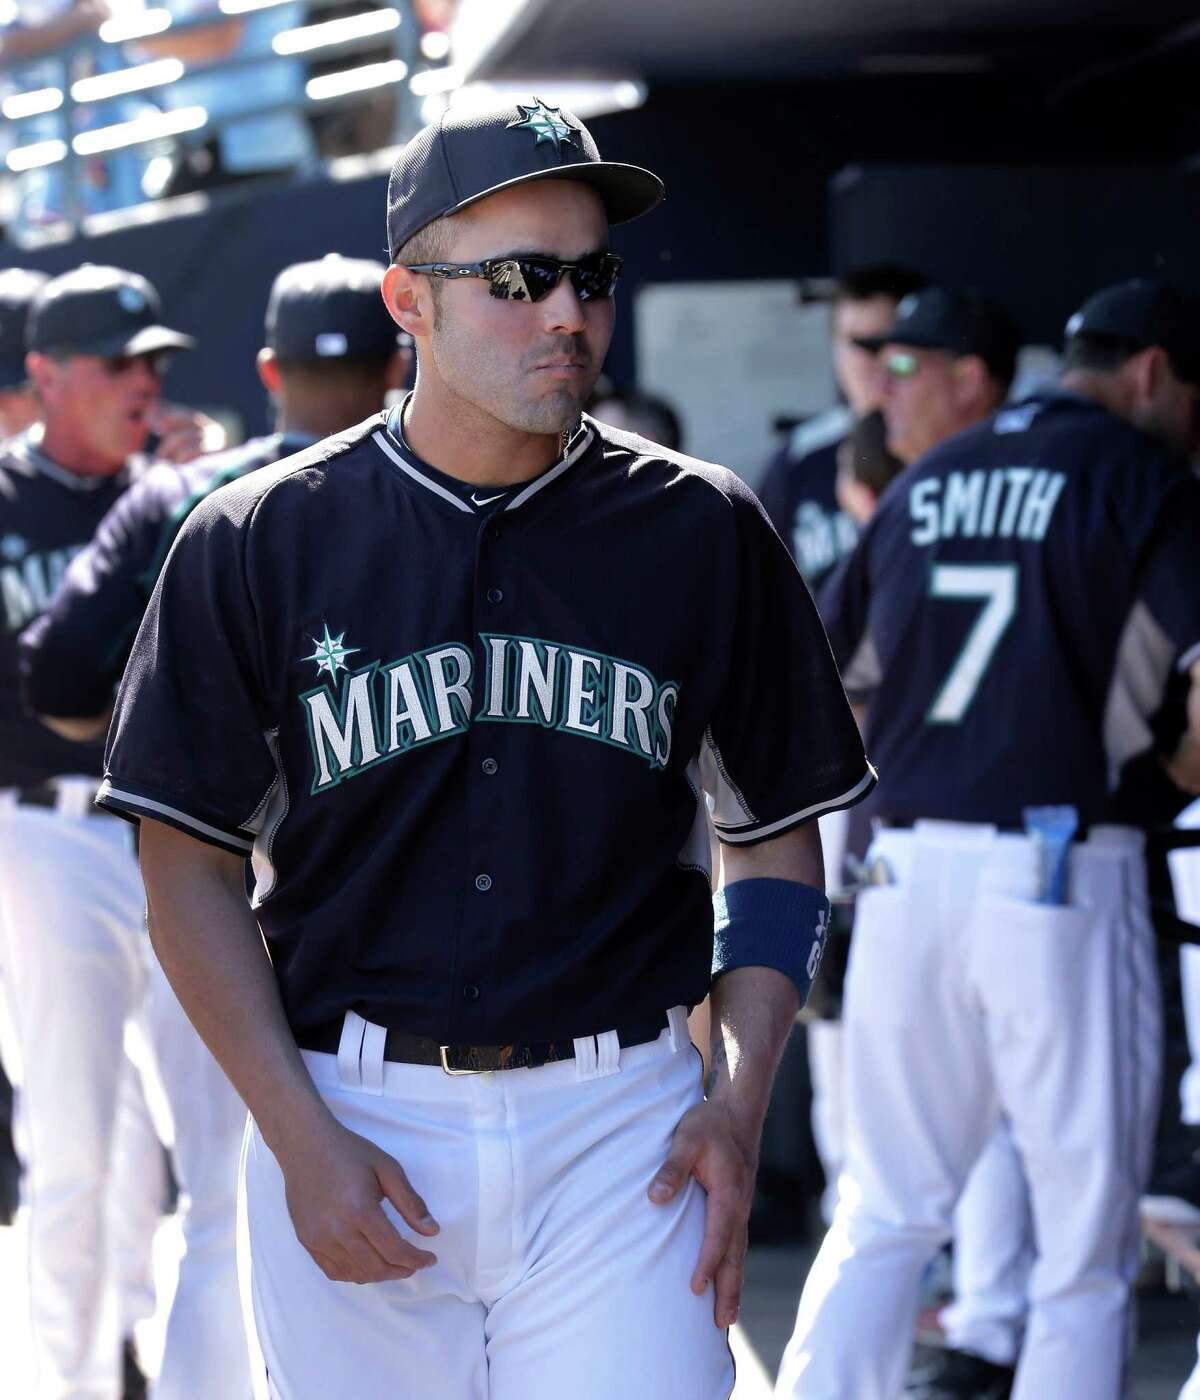 Seattle Mariners' Jesus Montero walks through the dugout before a spring training baseball game against the San Diego Padres Thursday, March 5, 2015, in Peoria, Ariz.